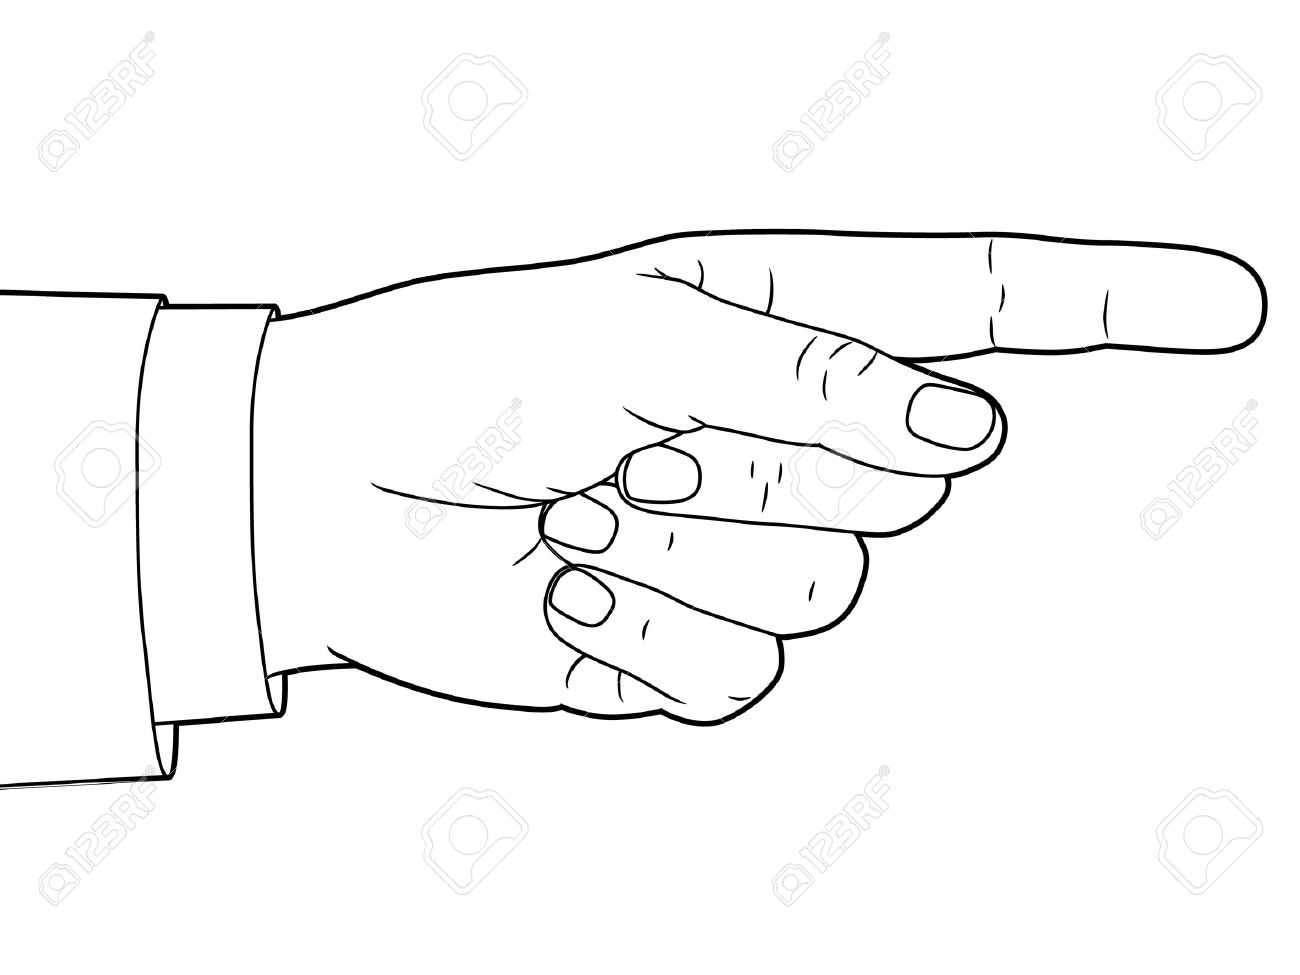 Pointer du doigt clipart royalty free library Hand Sign With Pointing Finger Royalty Free Cliparts, Vectors, And ... royalty free library